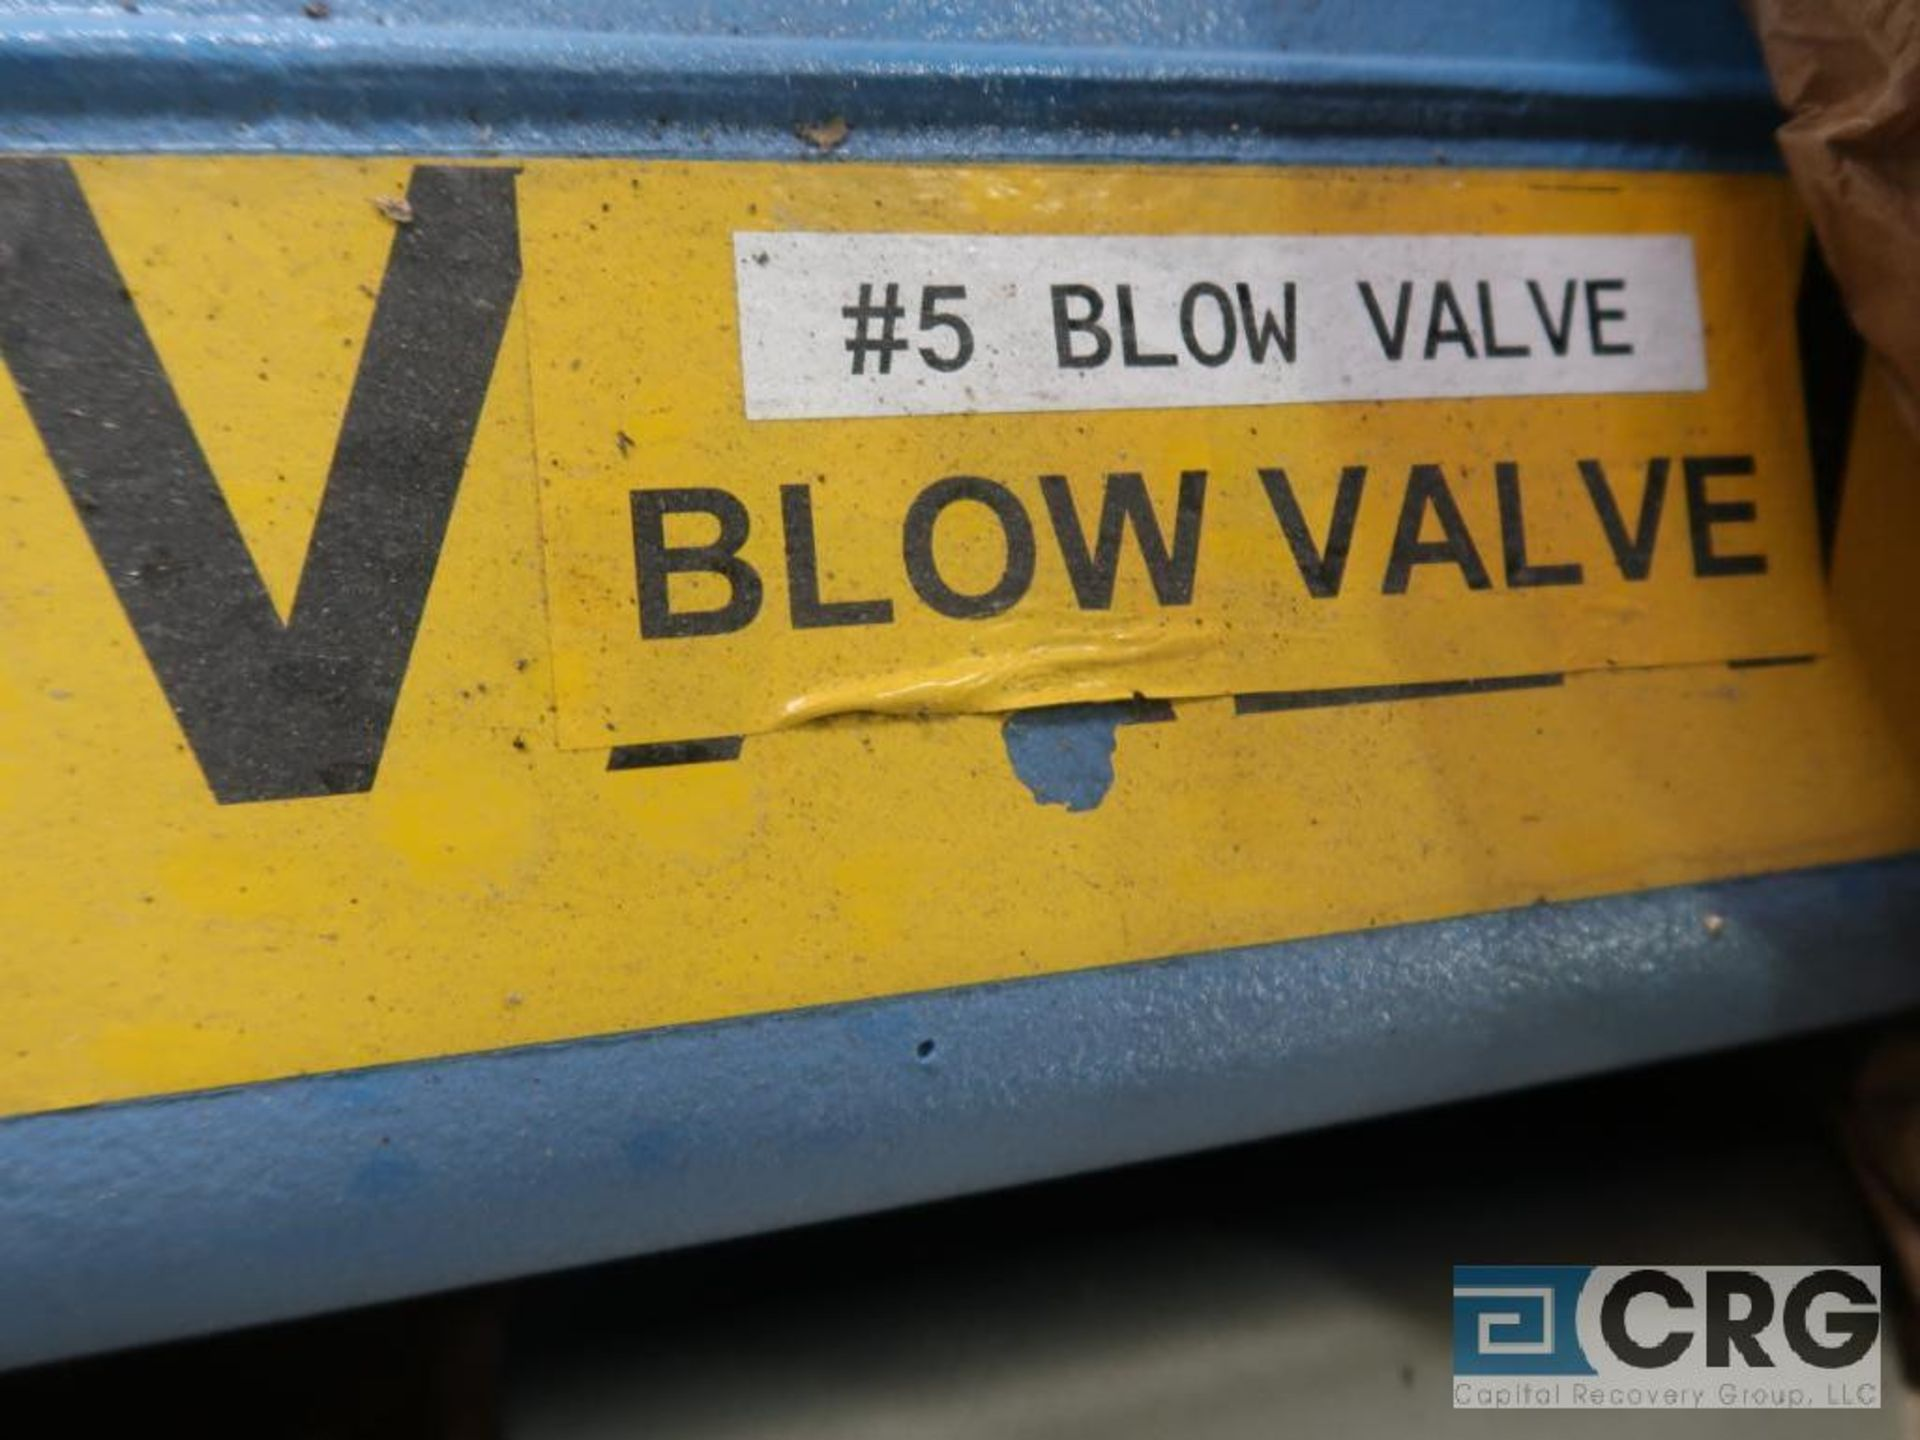 Jamesbury stainless 8 in. actuator valve (Finish Building) - Image 2 of 2